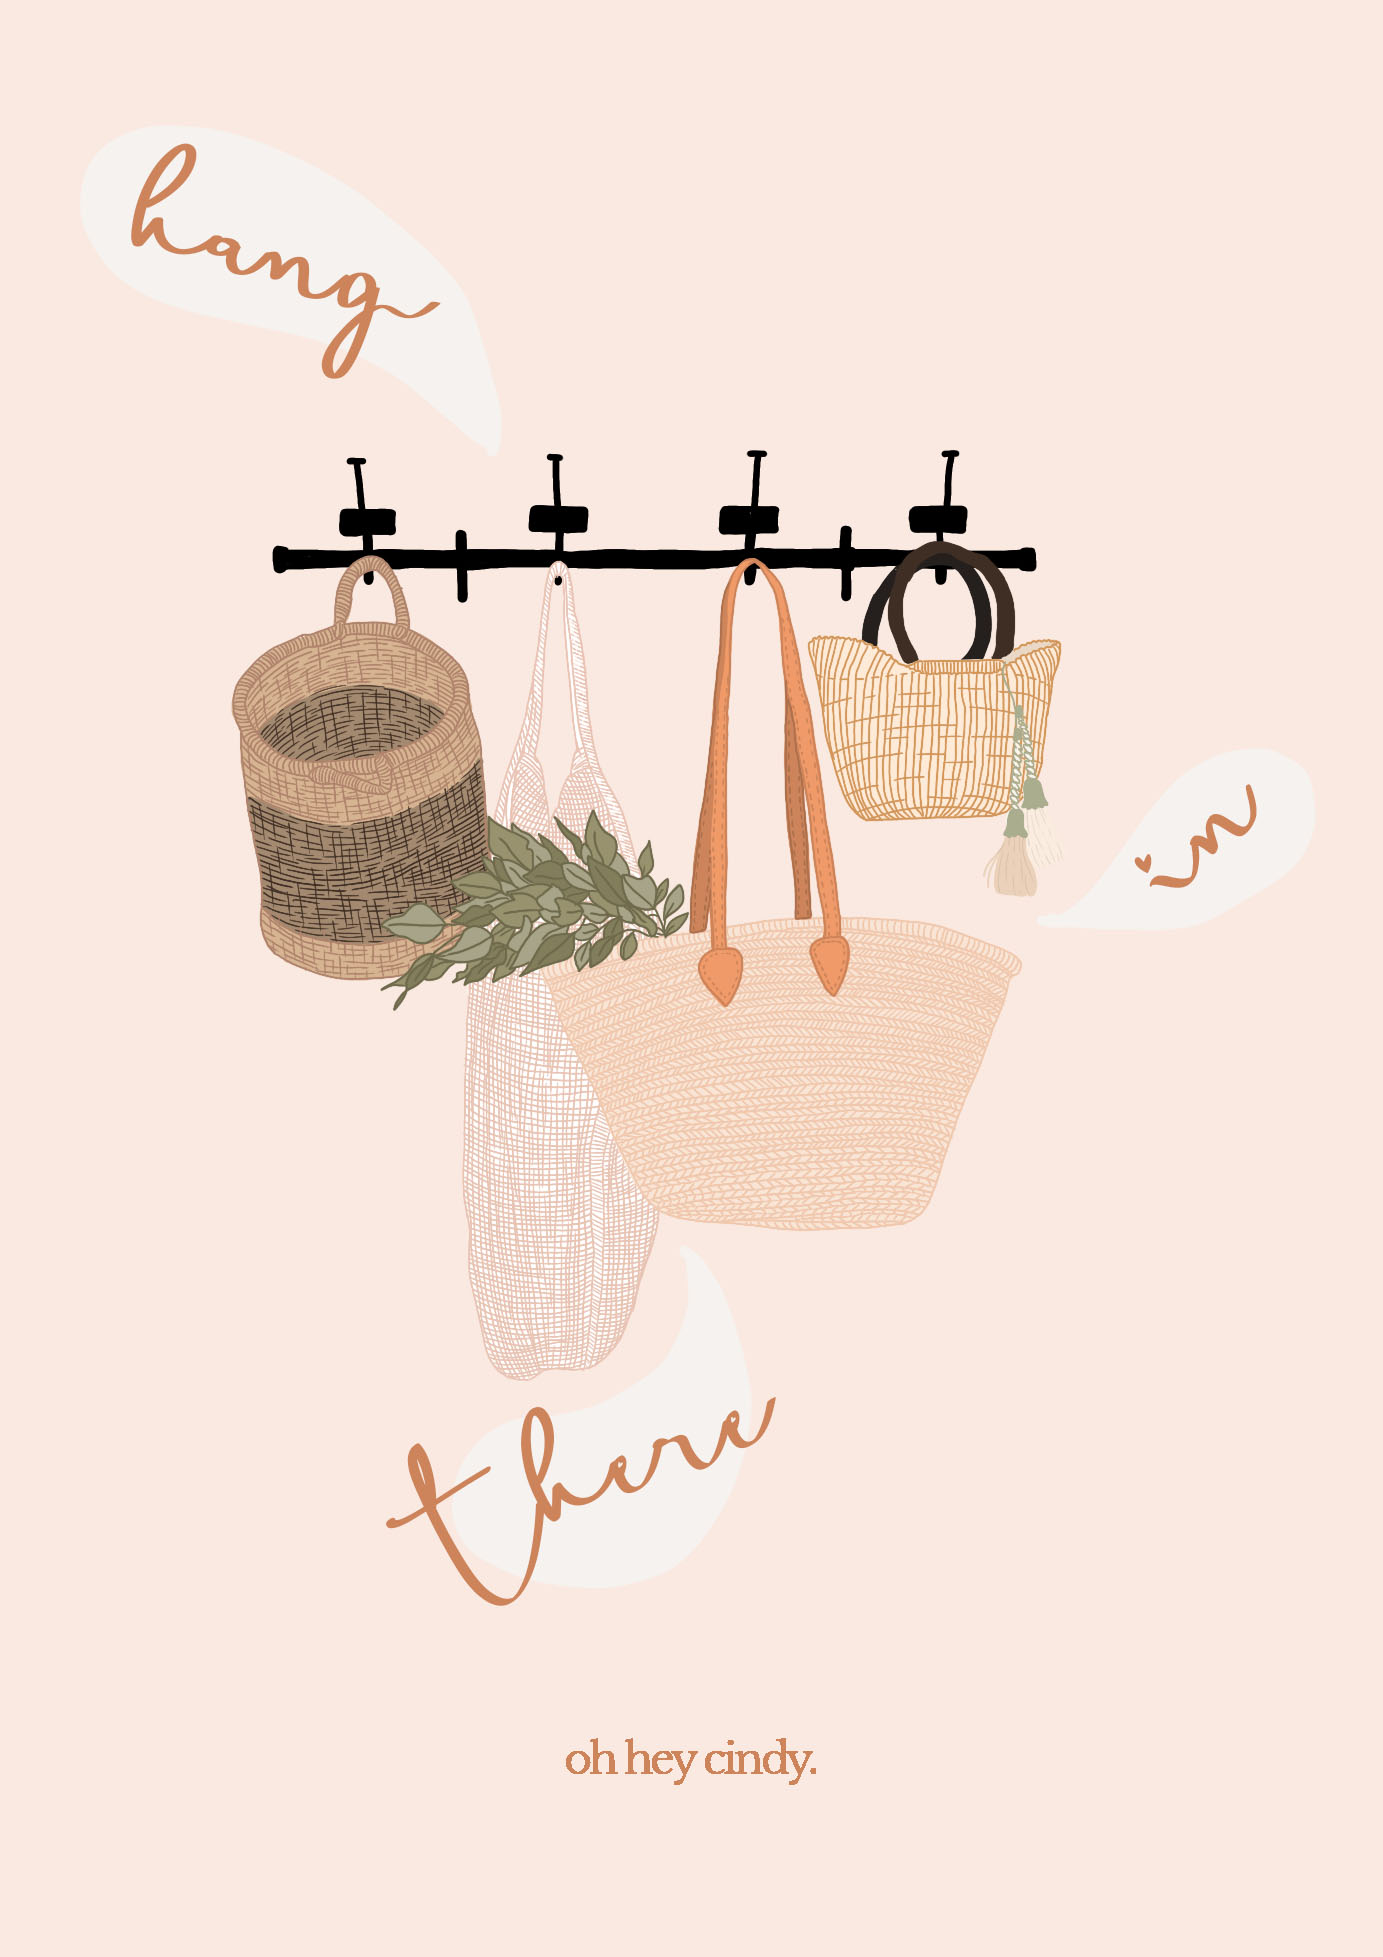 Hang in there illustration